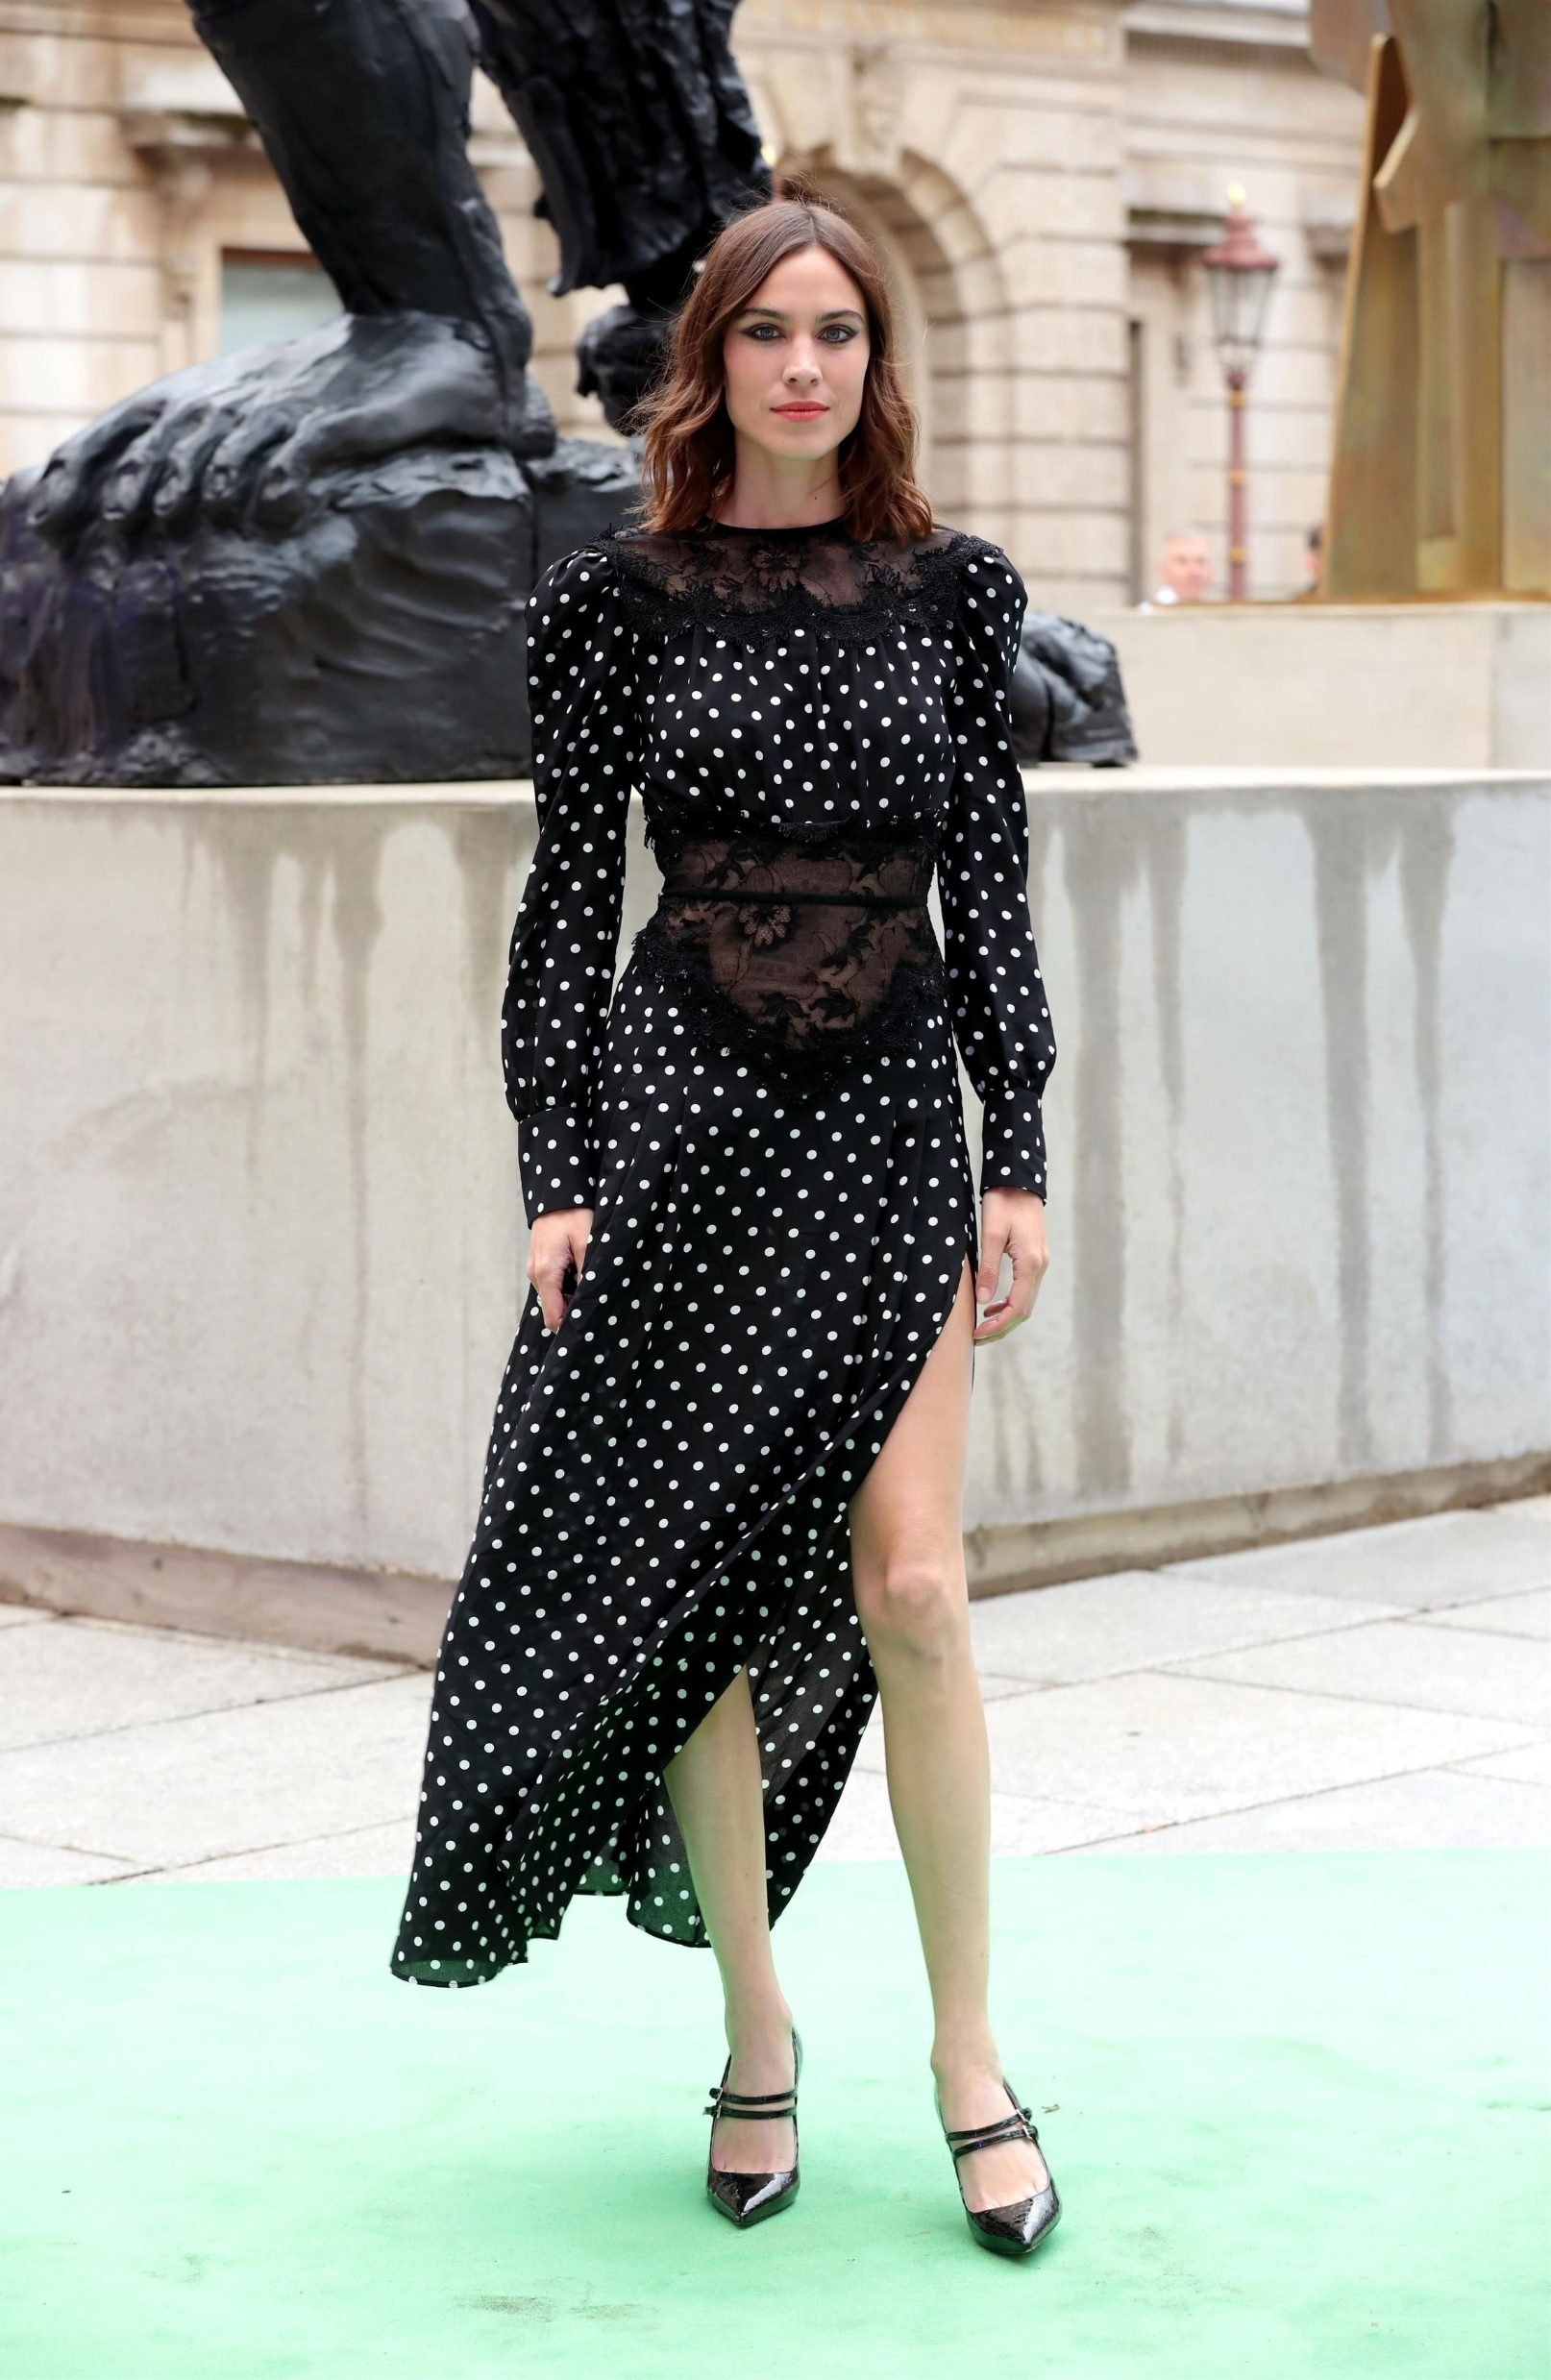 LONDON, UNITED KINGDOM  - Celebrities attend the Royal Academy of Arts Summer exhibition preview party at Royal Academy of Arts, London, UK.  *UK Clients - Pictures Containing Children Please Pixelate Face Prior To Publication*,Image: 443299357, License: Rights-managed, Restrictions: , Model Release: no, Credit line: BACKGRID / Backgrid UK / Profimedia